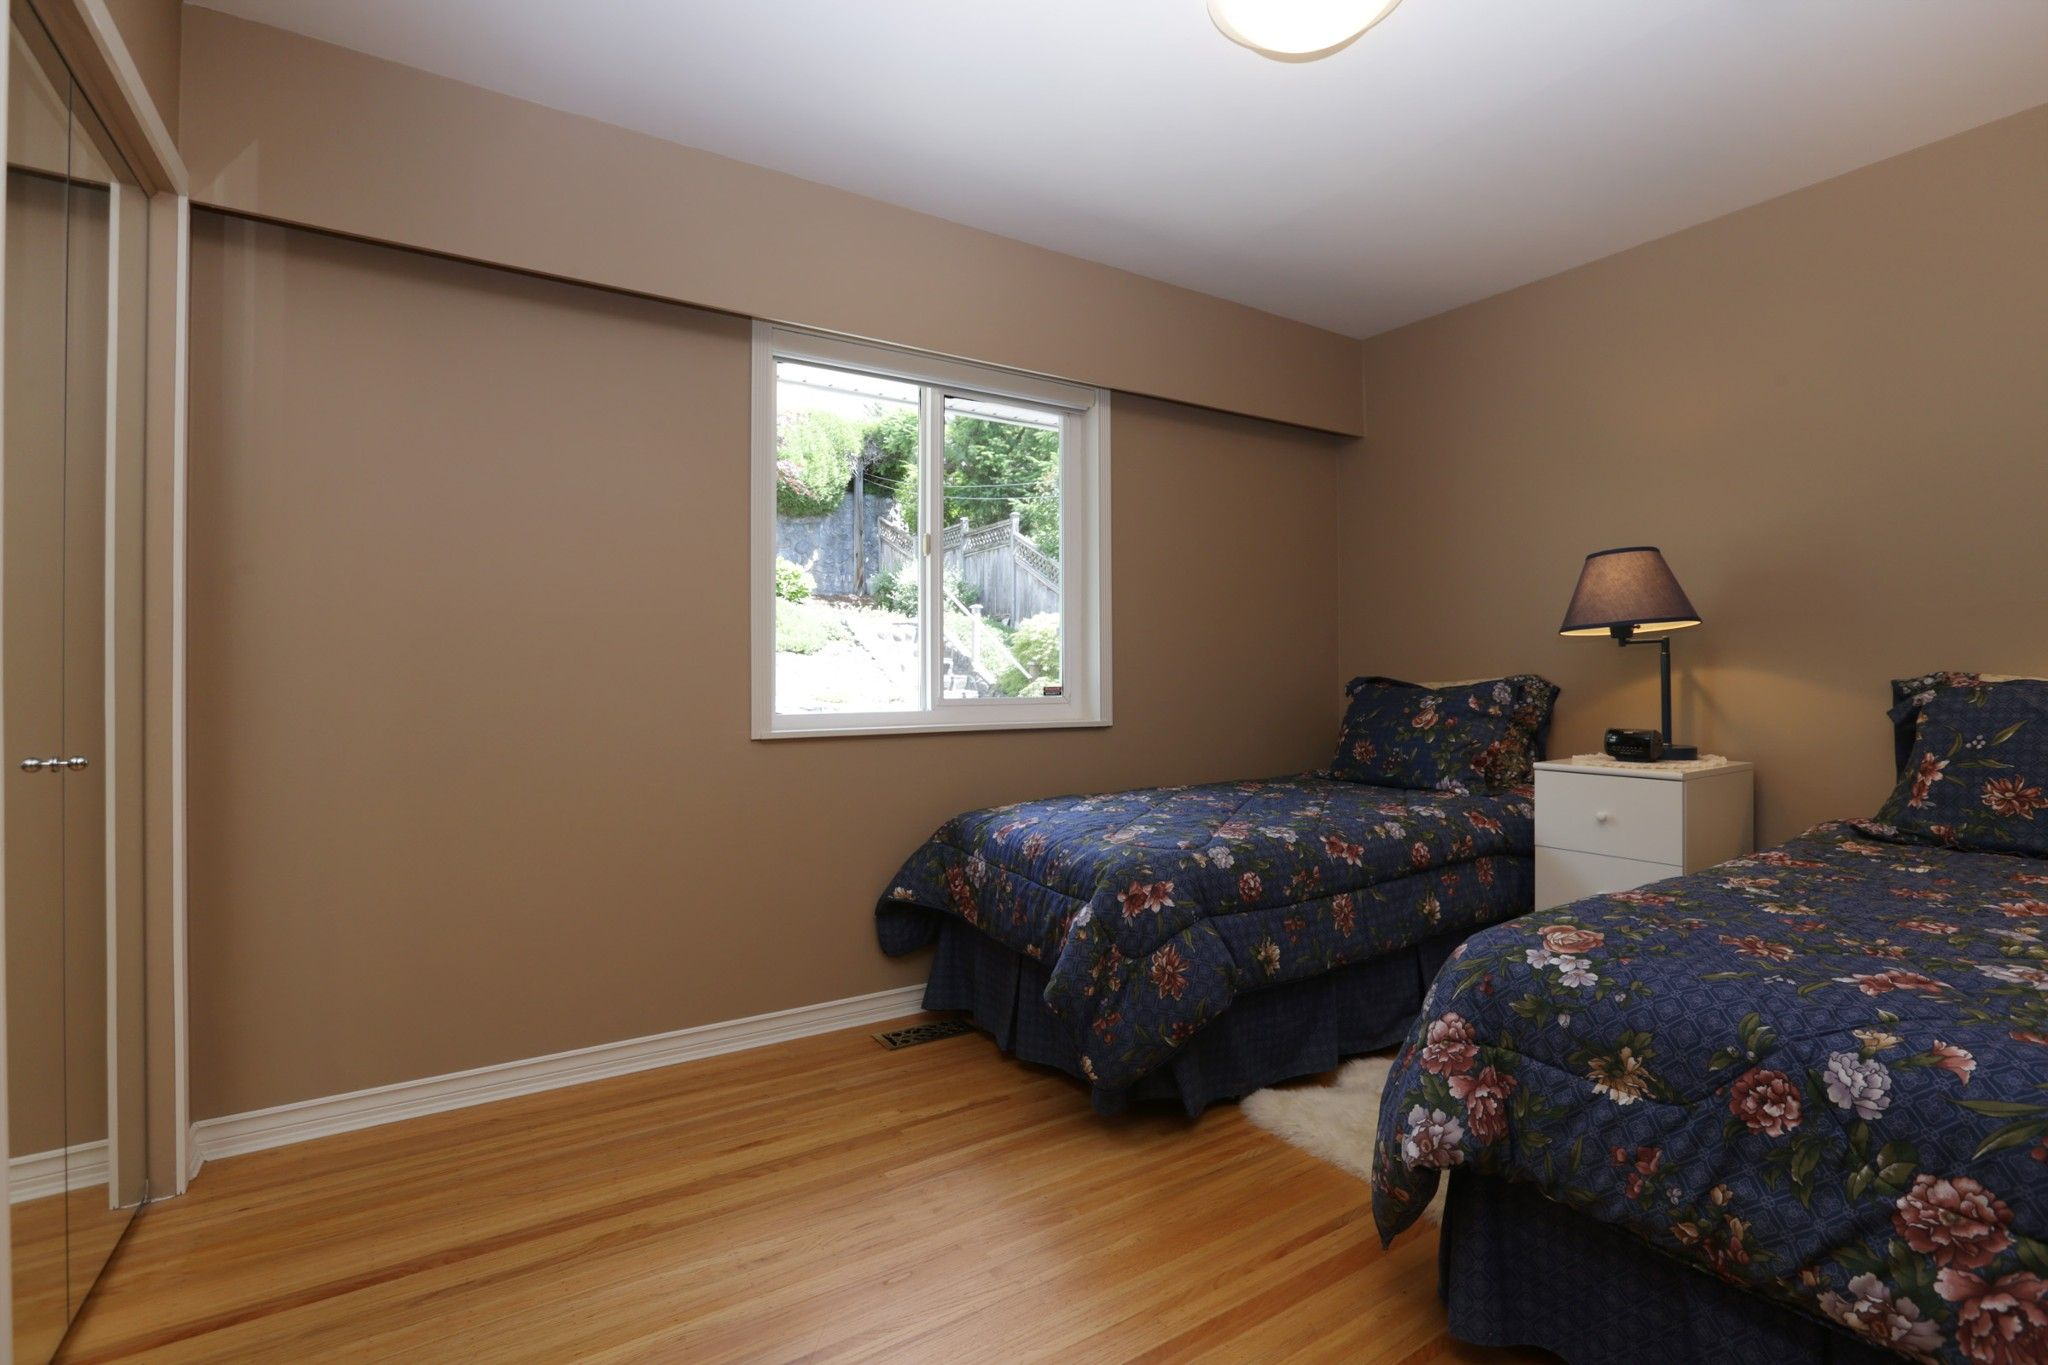 Photo 12: Photos: 372 VENTURA Crescent in North Vancouver: Upper Delbrook House for sale : MLS®# R2284717